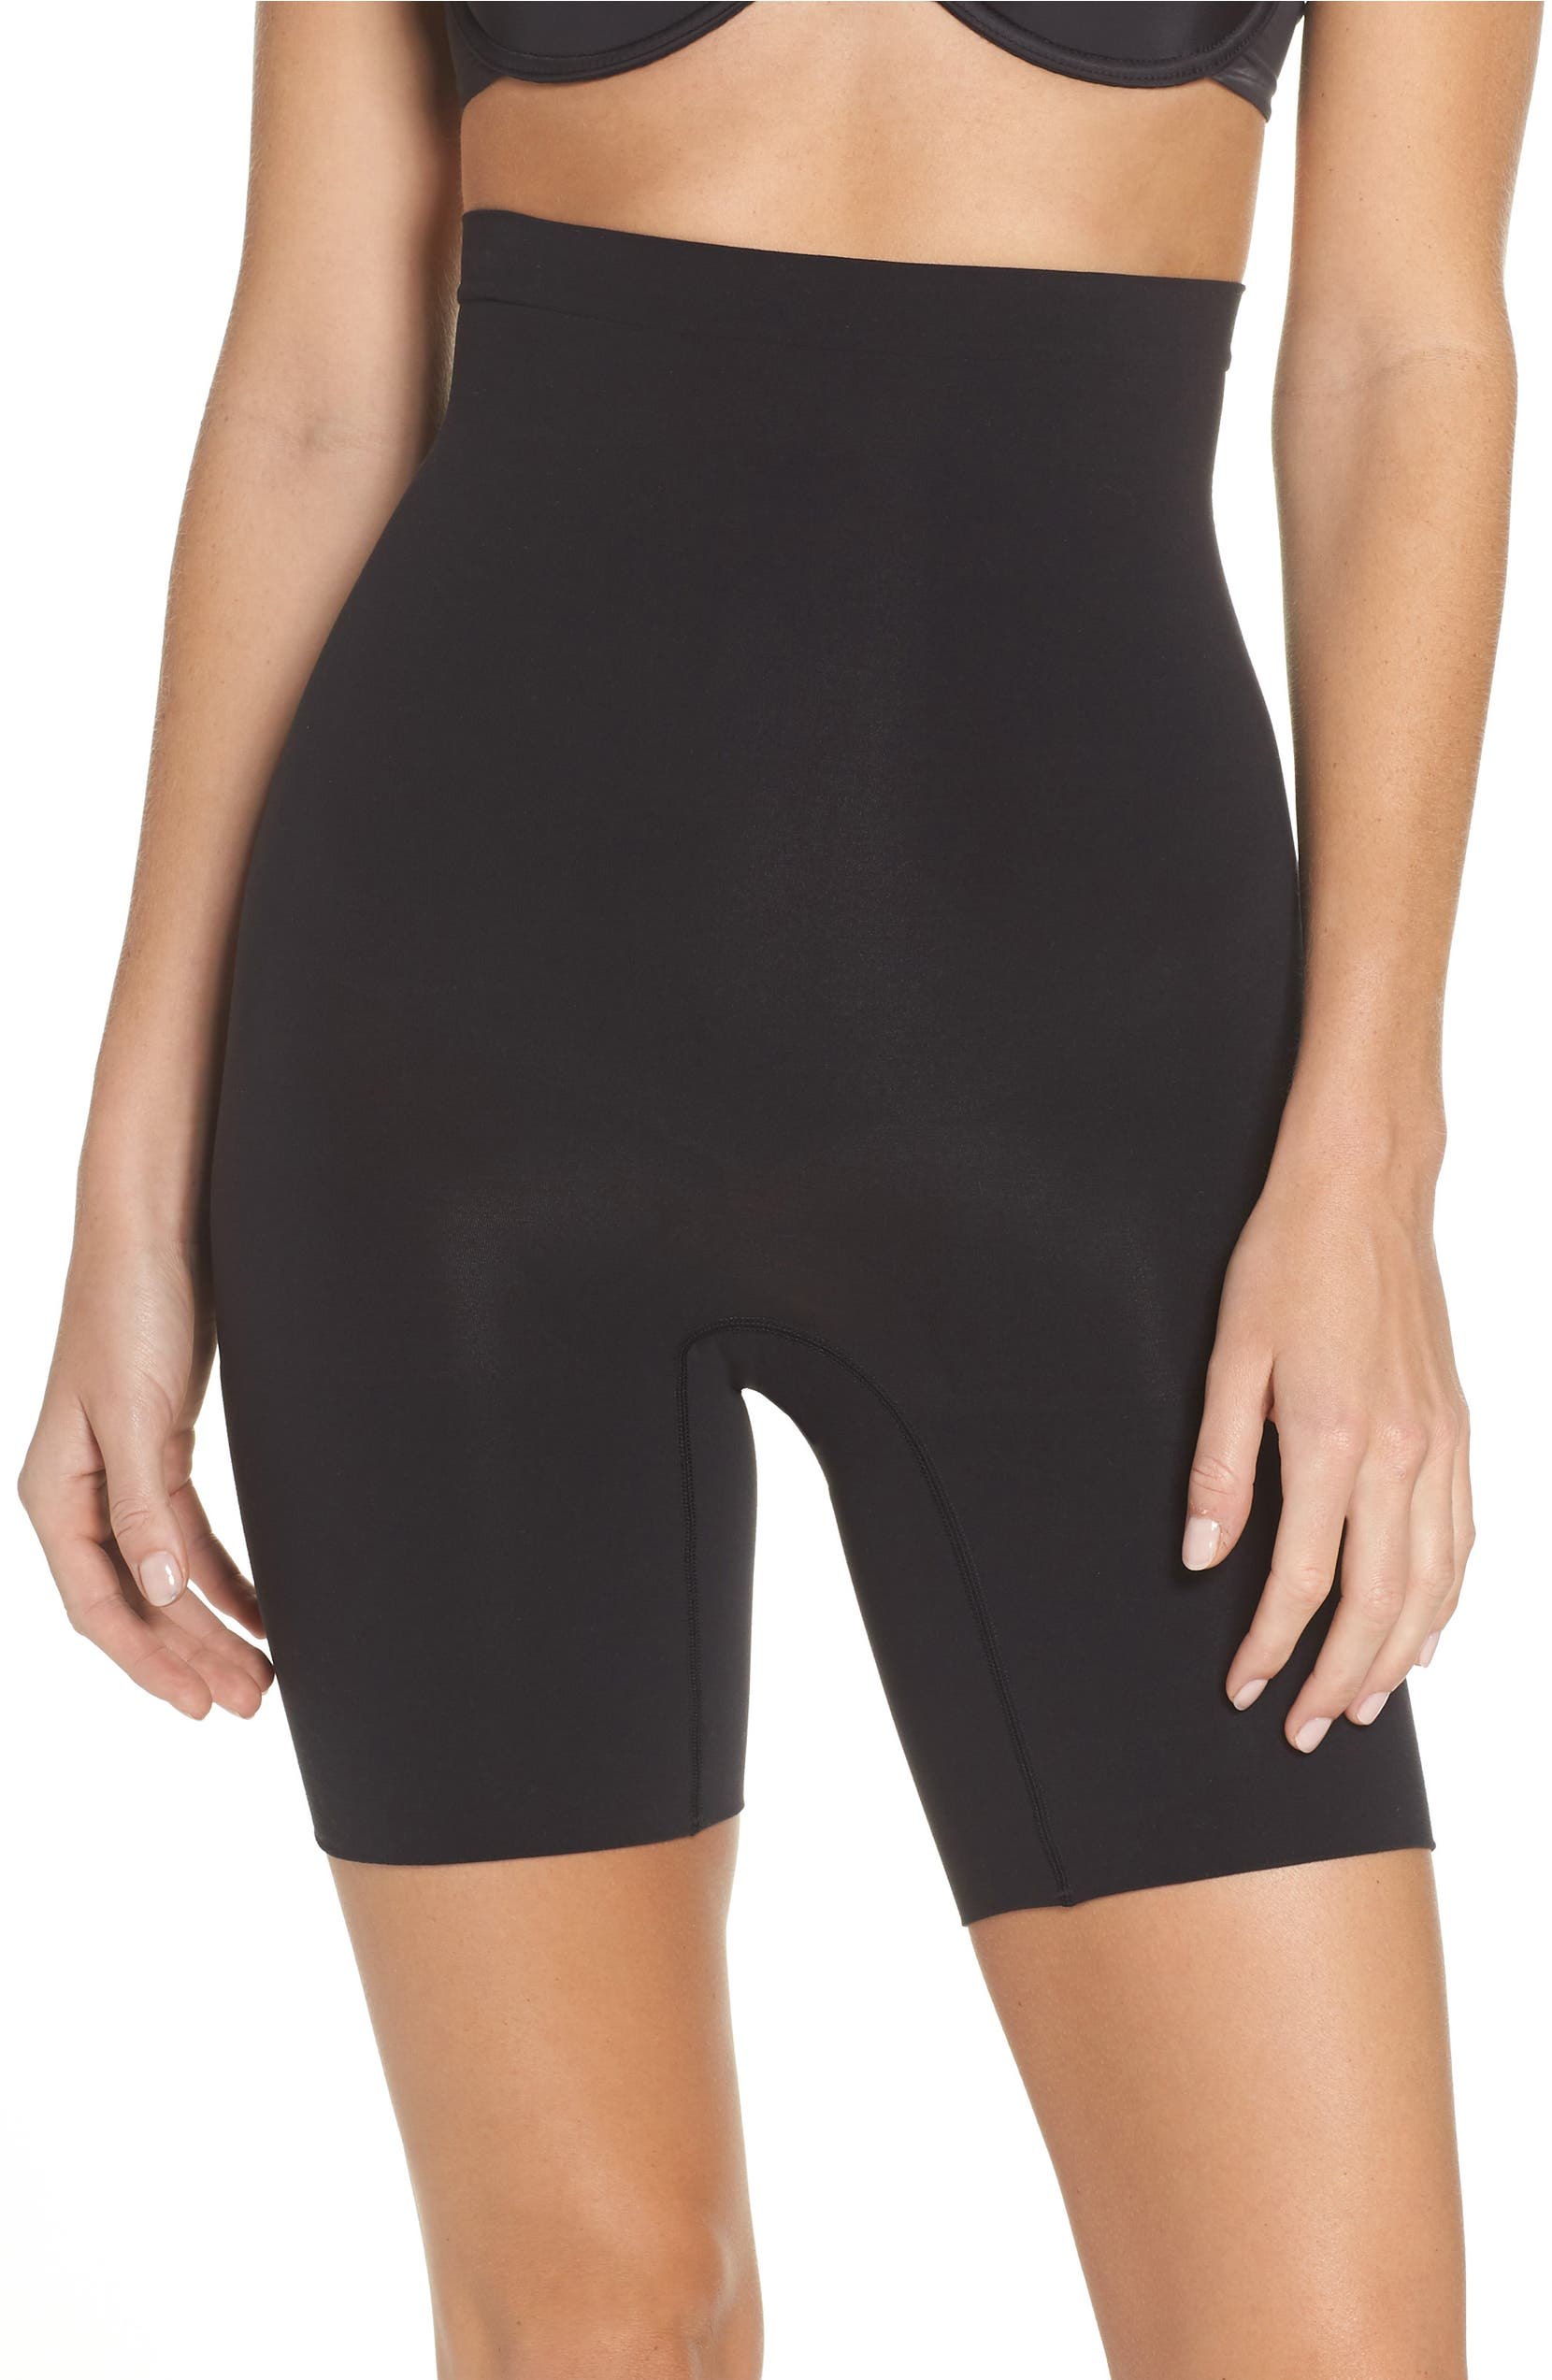 a402d6002d88 SPANX® Higher Power Mid-Thigh Shaping Shorts (Regular & Plus Size) |  Nordstrom